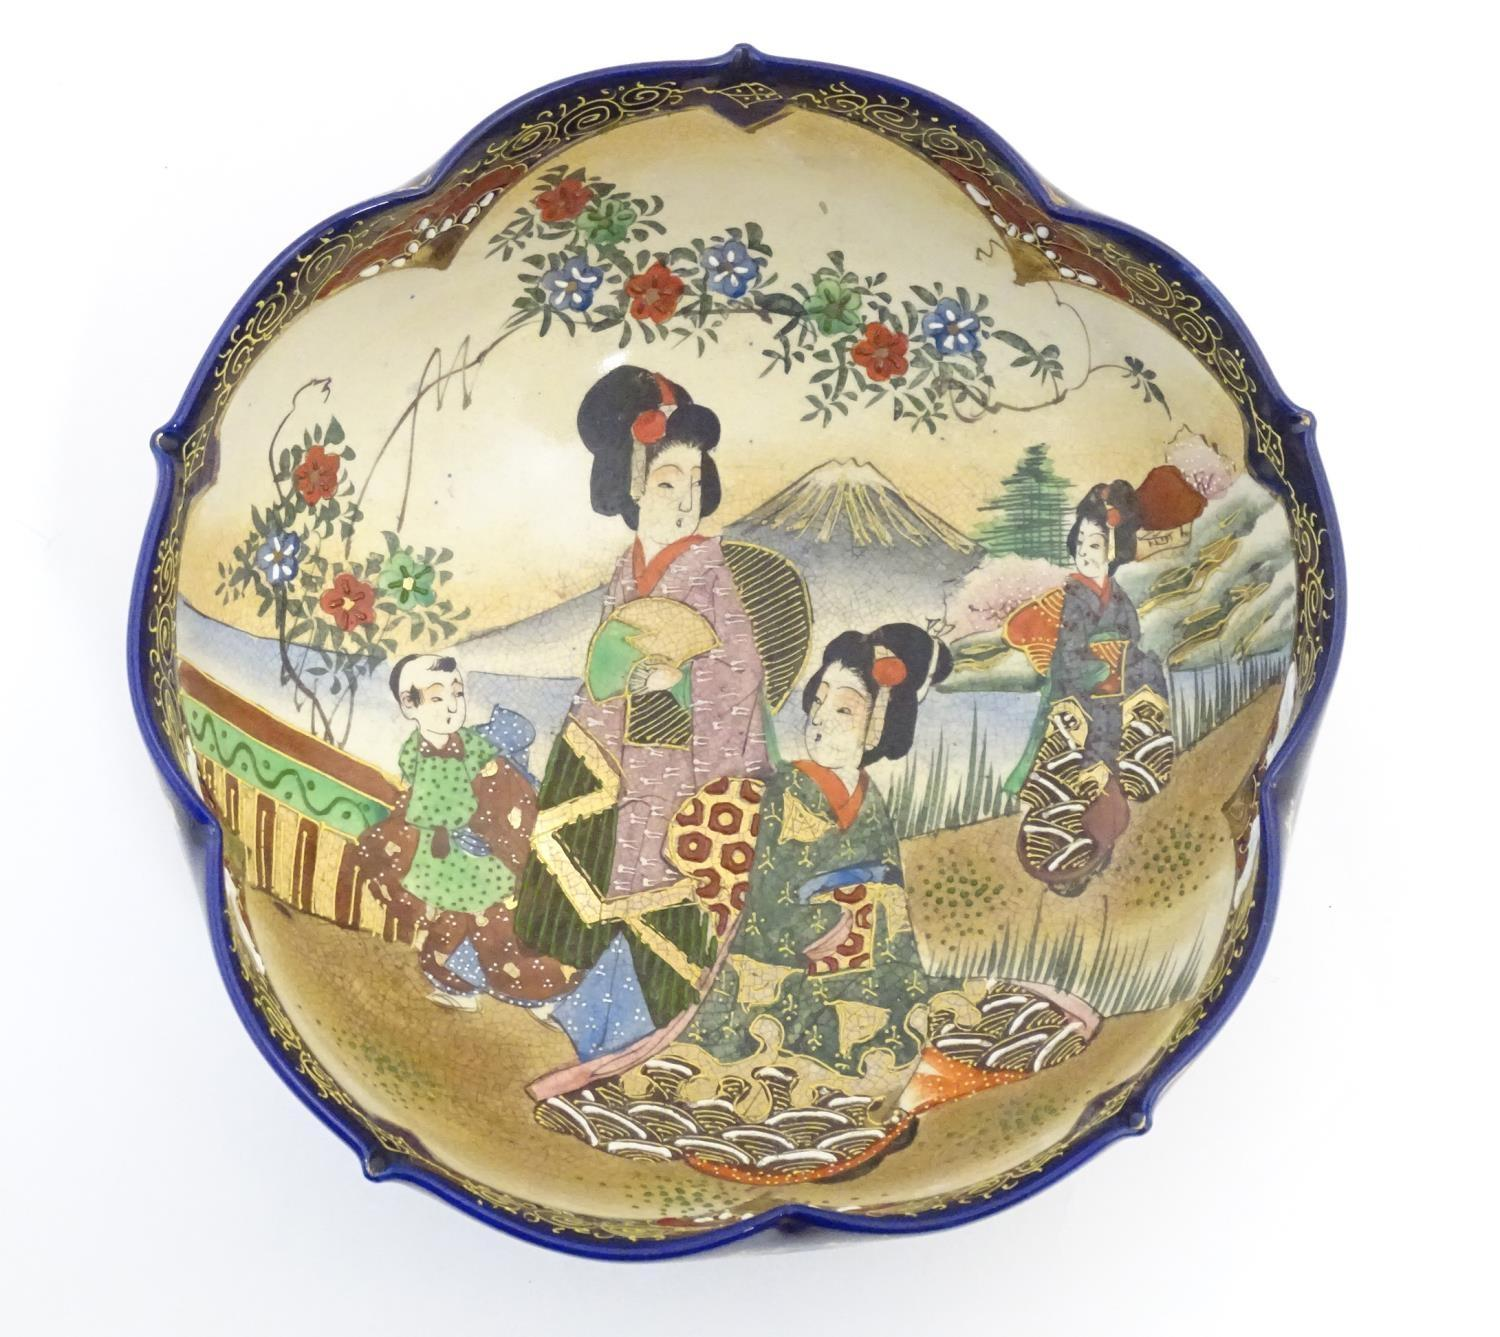 A Japanese export bowl with a lobed rim, decorated with Geisha girls with fans and flowers in a - Image 3 of 7